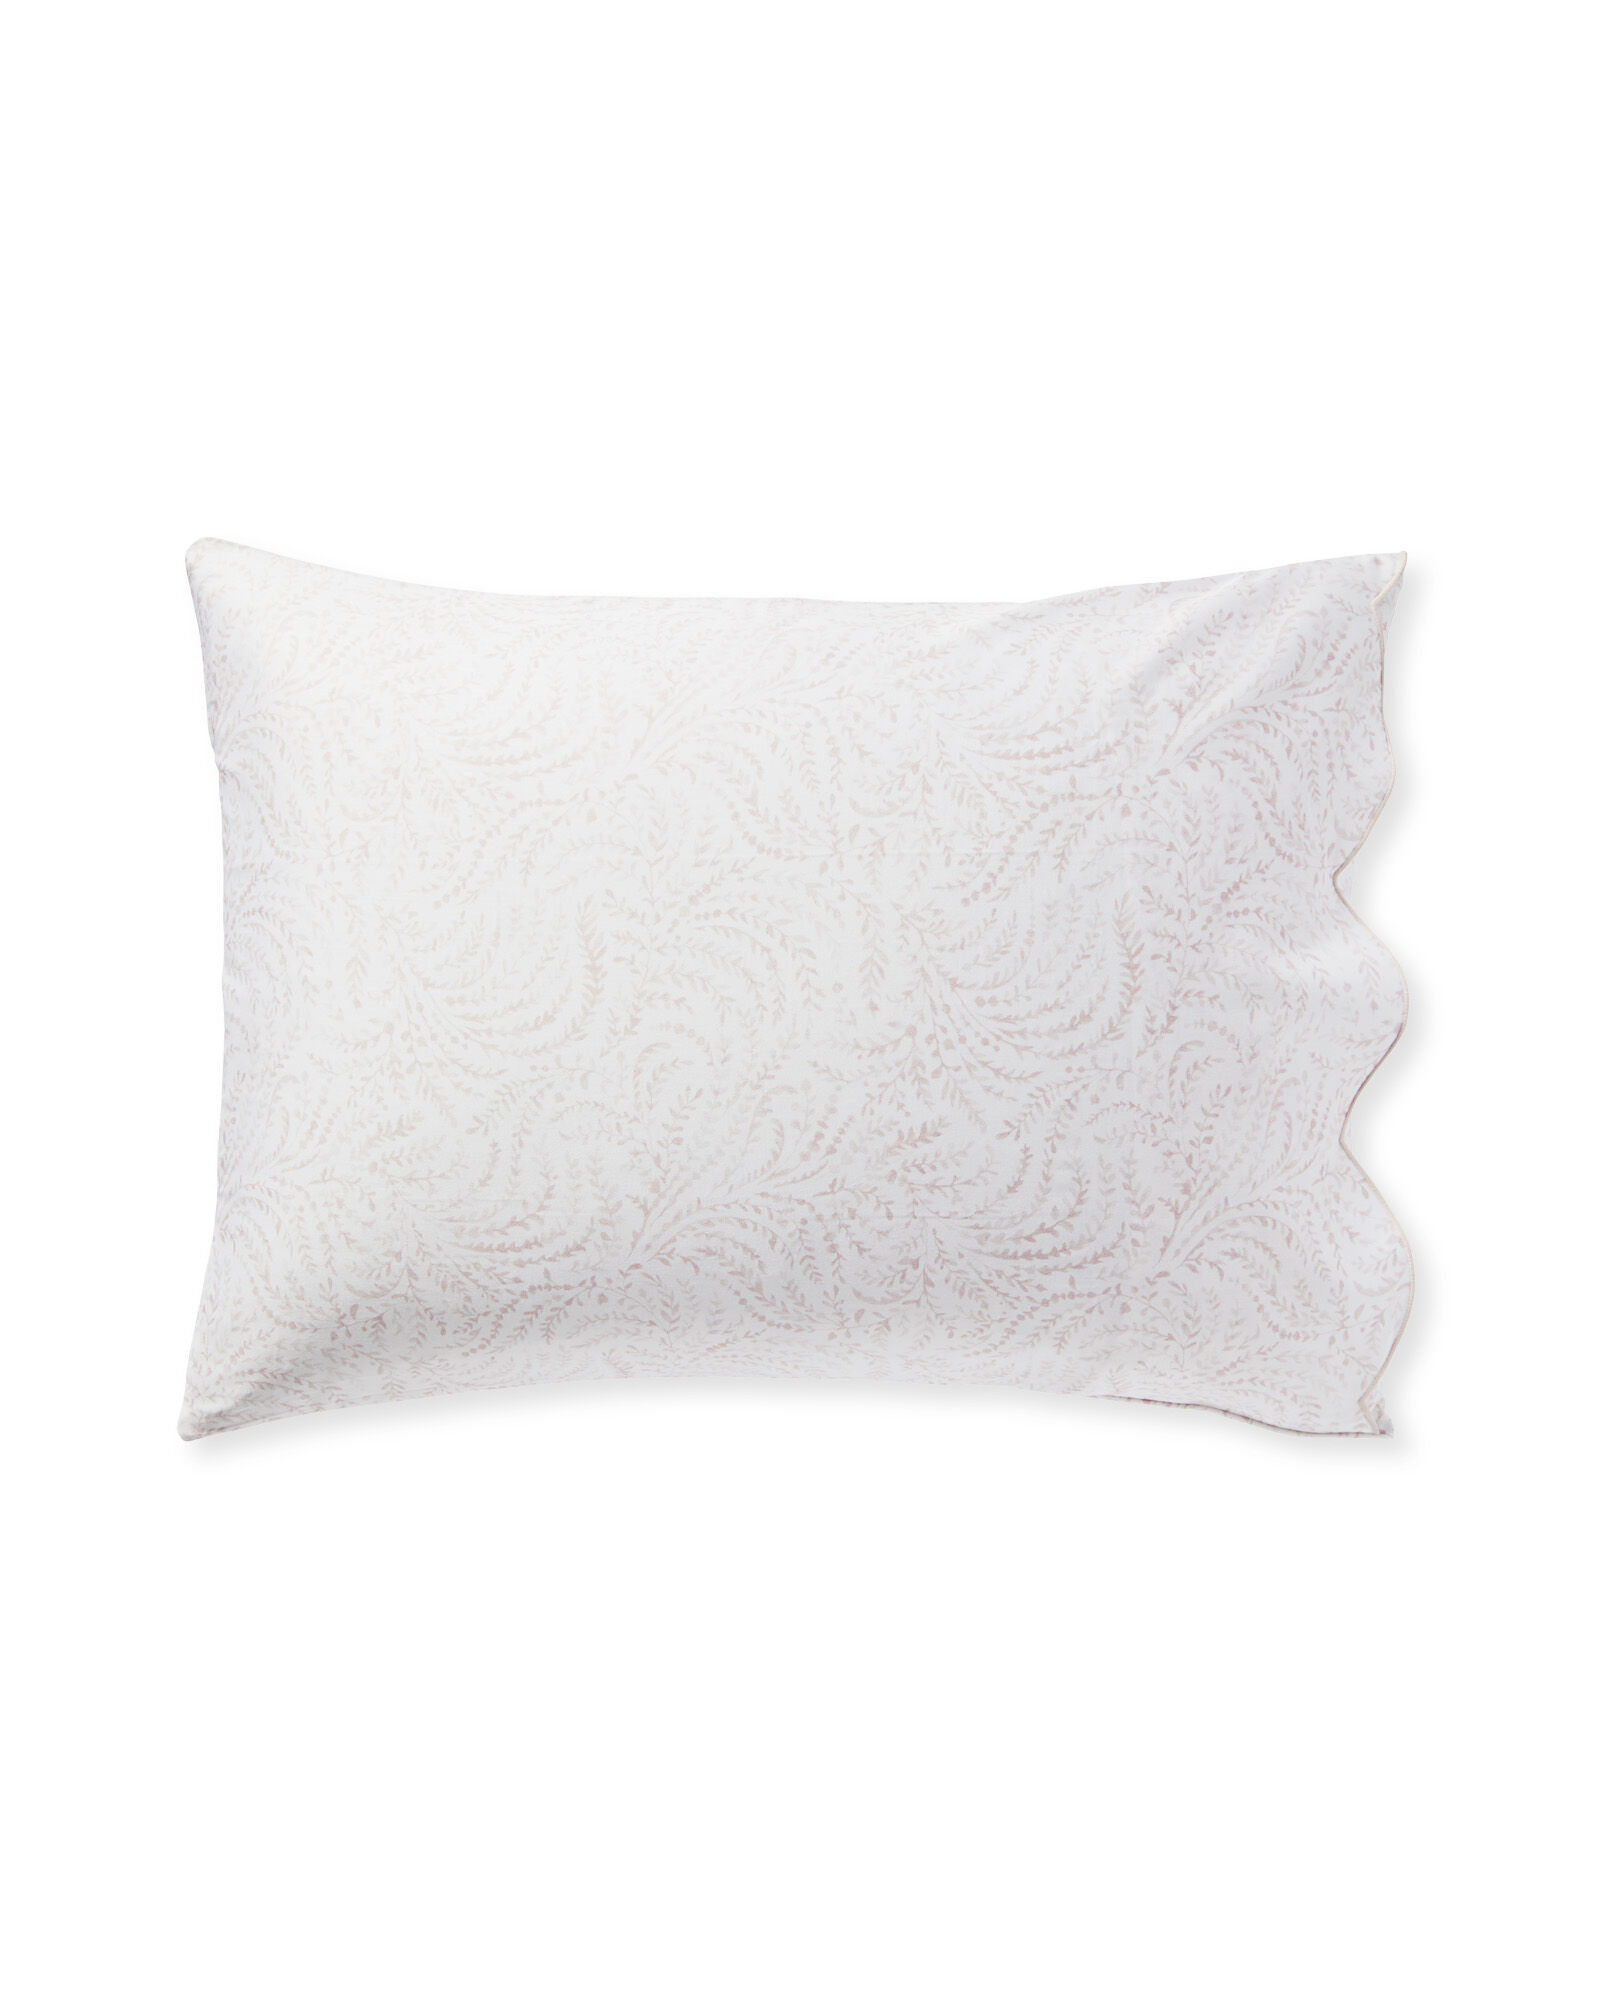 Priano Pillowcases (Set of 2), Pink Sand